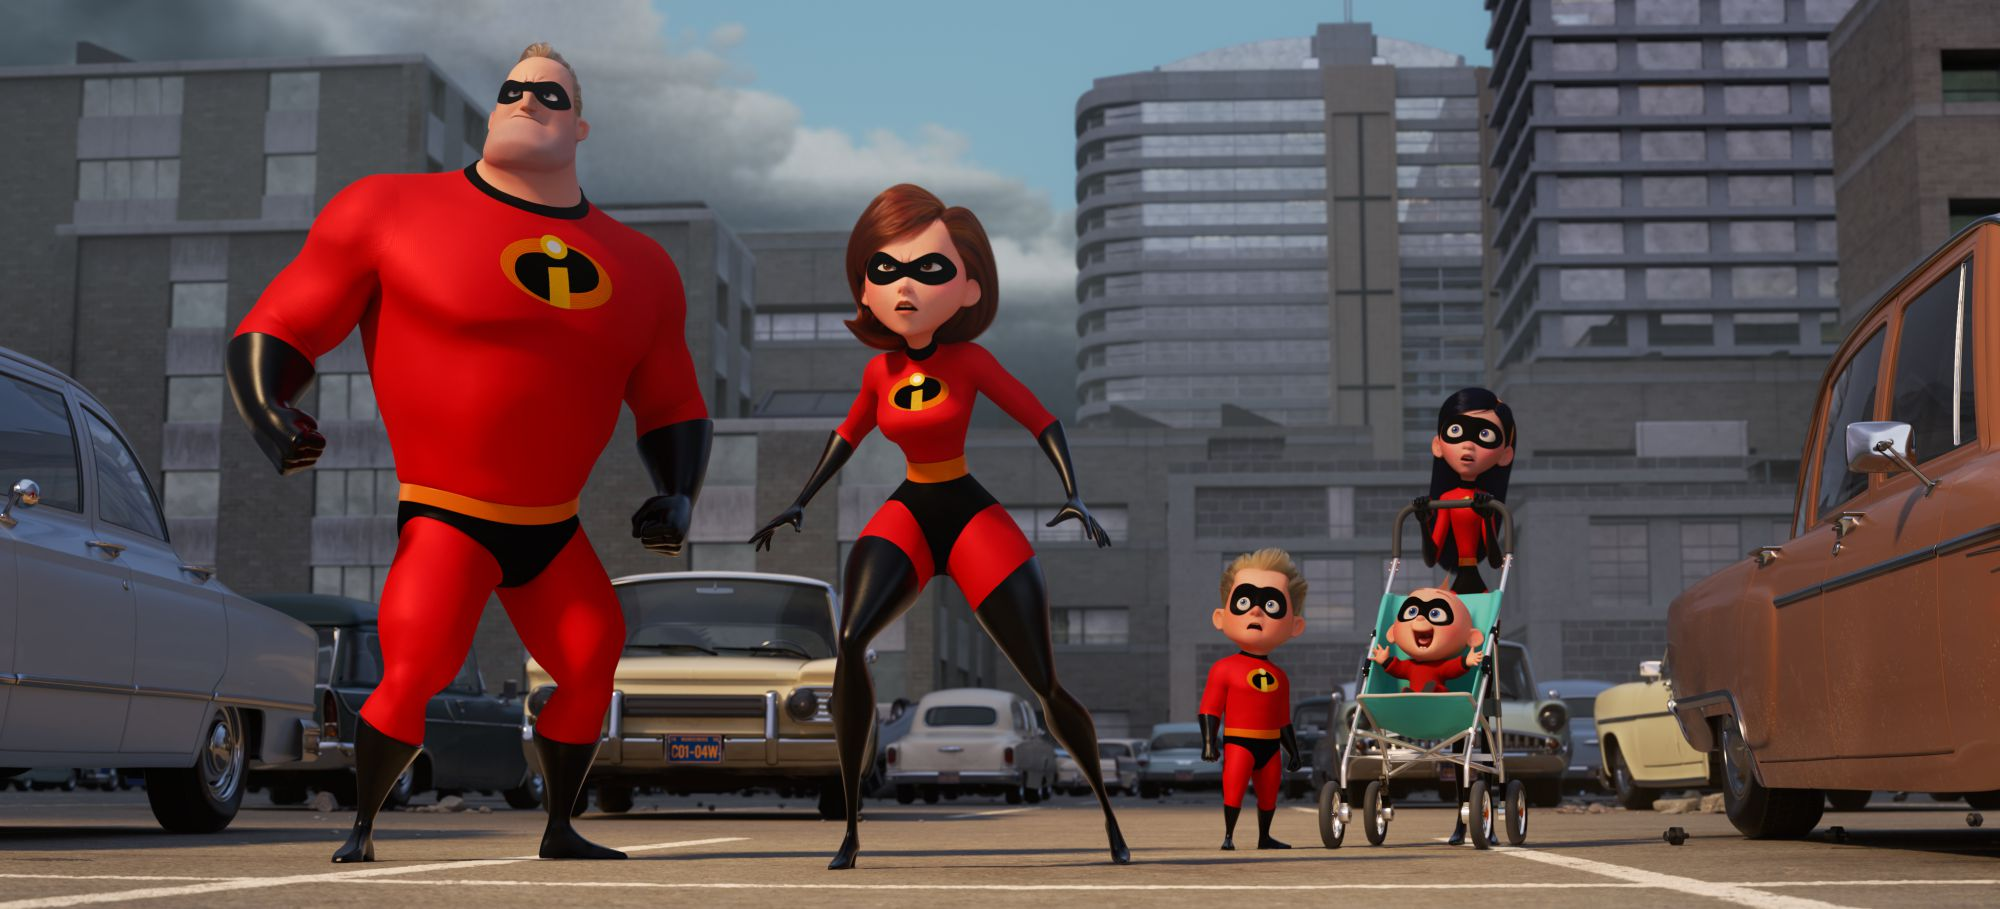 La Super Familia -- Helen (Interpretada por la voz de Holly Hunter) es la protagonista ©2017 Disney•Pixar. All Rights Reserved